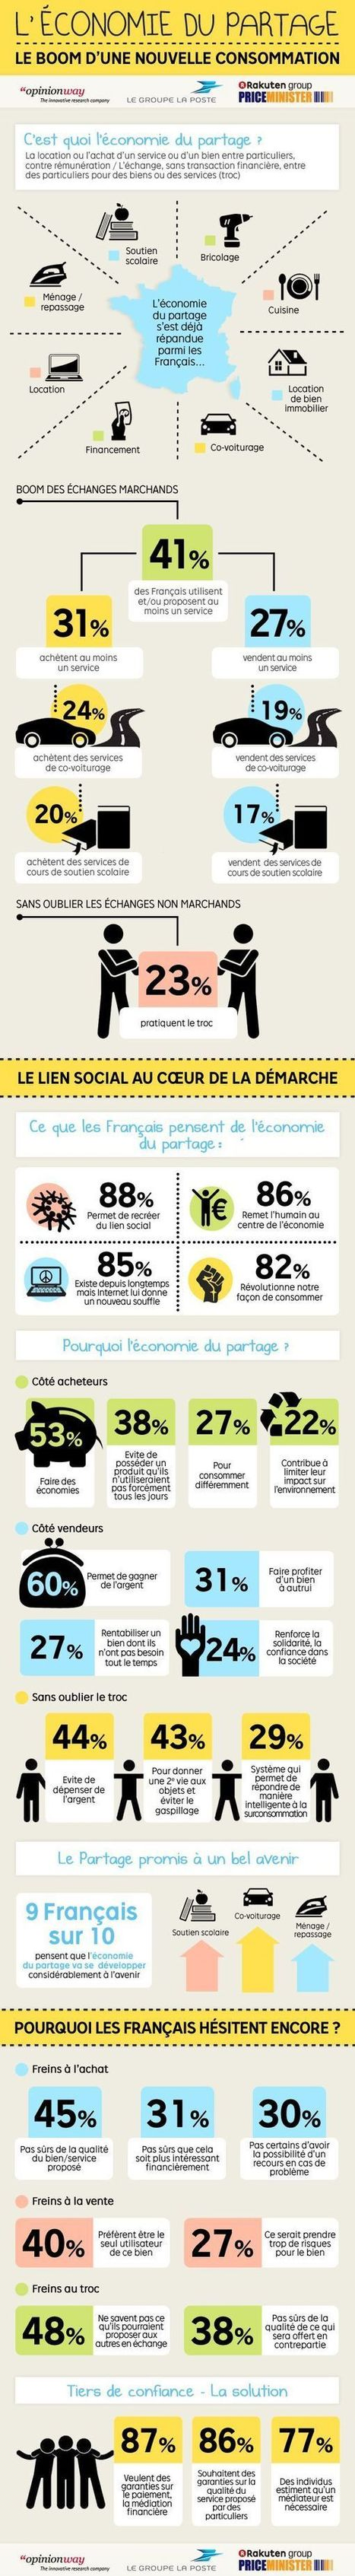 Infographies RSE, Green, Developpement Durable,... | Tendances RSE | Scoop.it